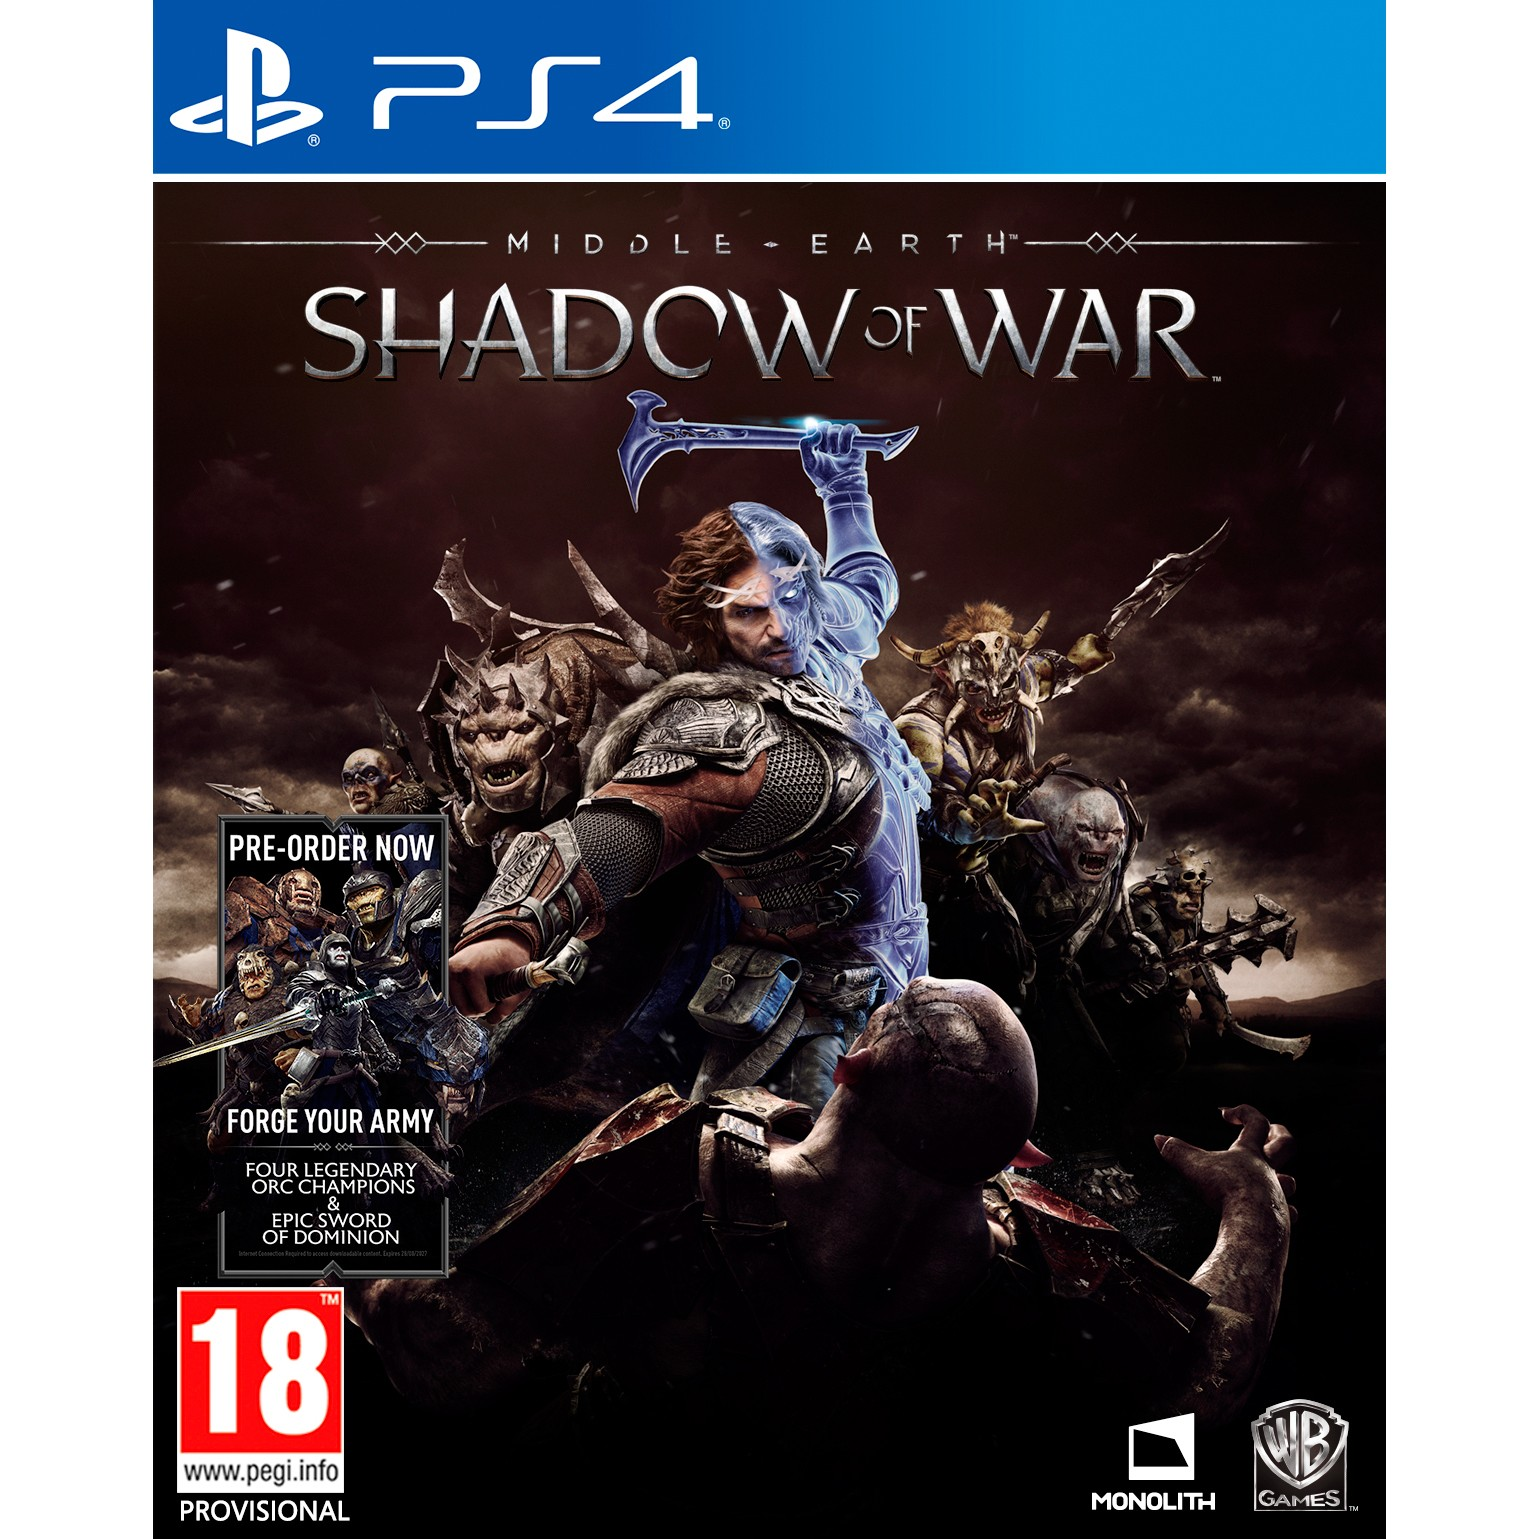 1000639380 : Middle-Earth: Shadow of War (PS4)